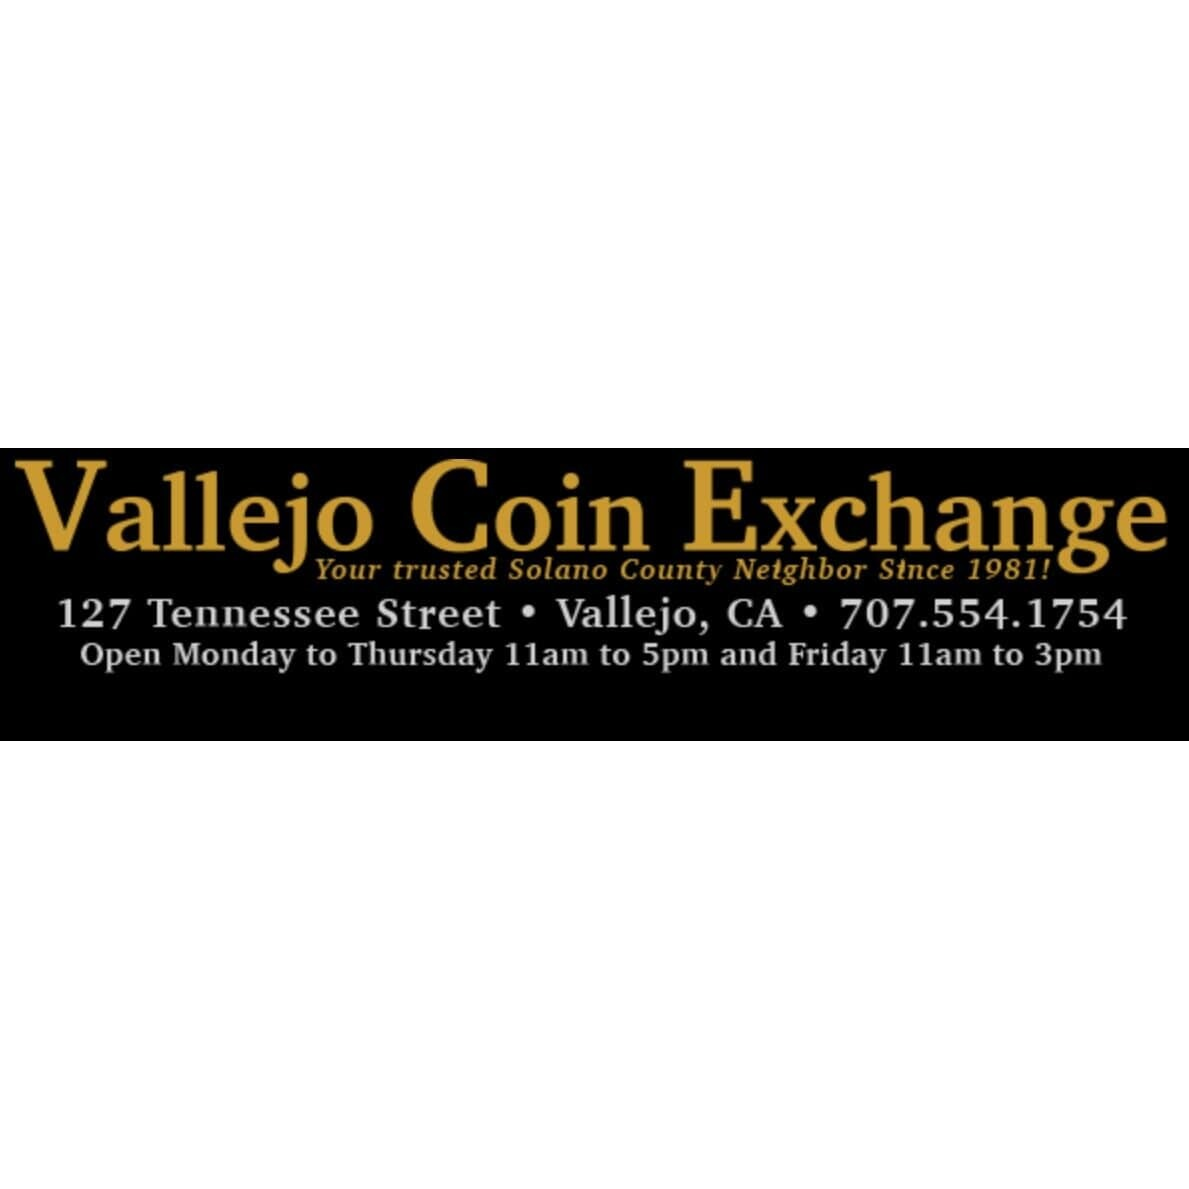 Vallejo Coin Exchange